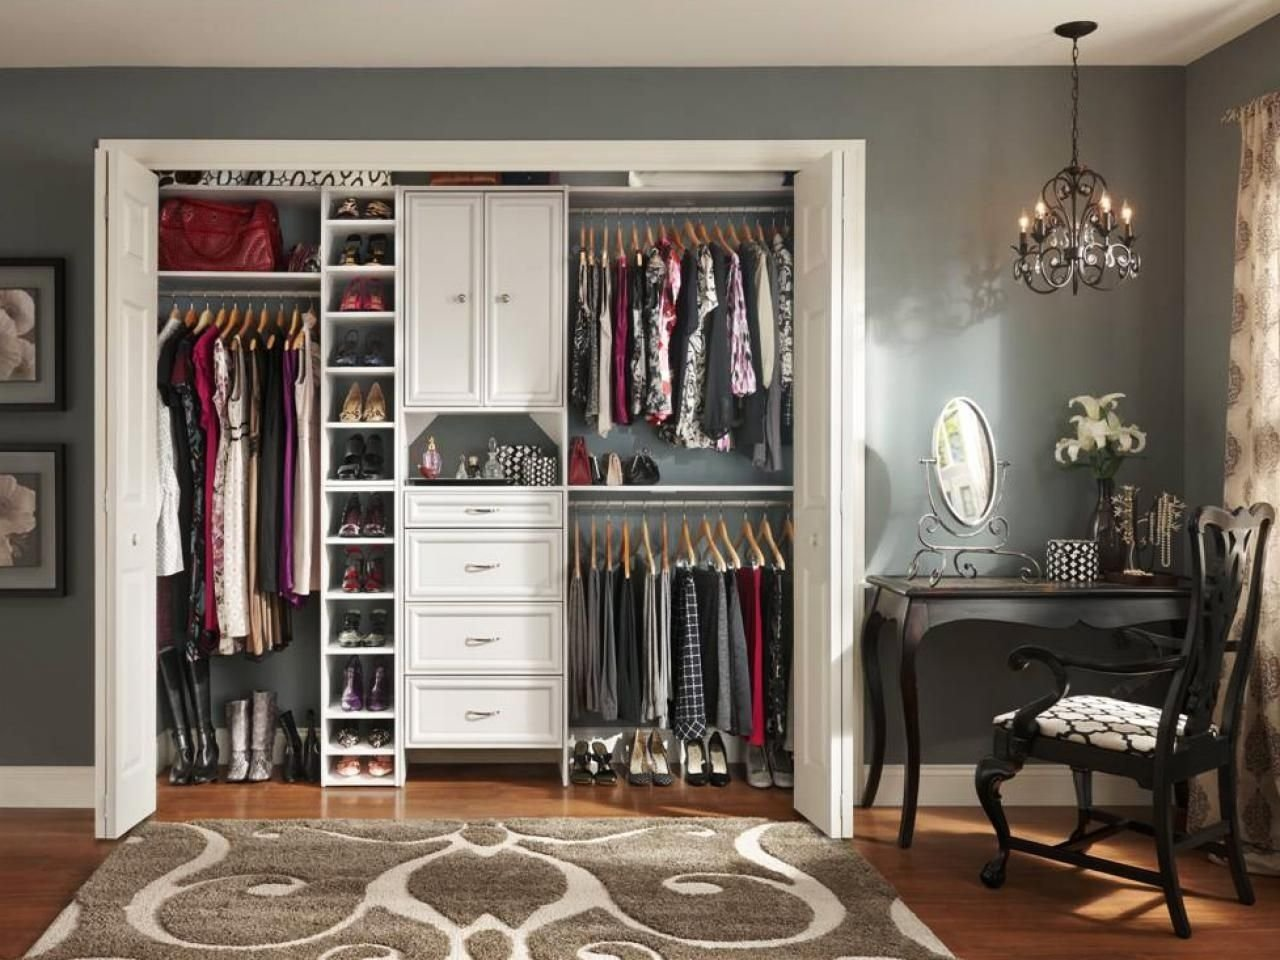 10 Attractive Closet Organization Ideas For Small Closets small closet organization ideas pictures options tips small 2021